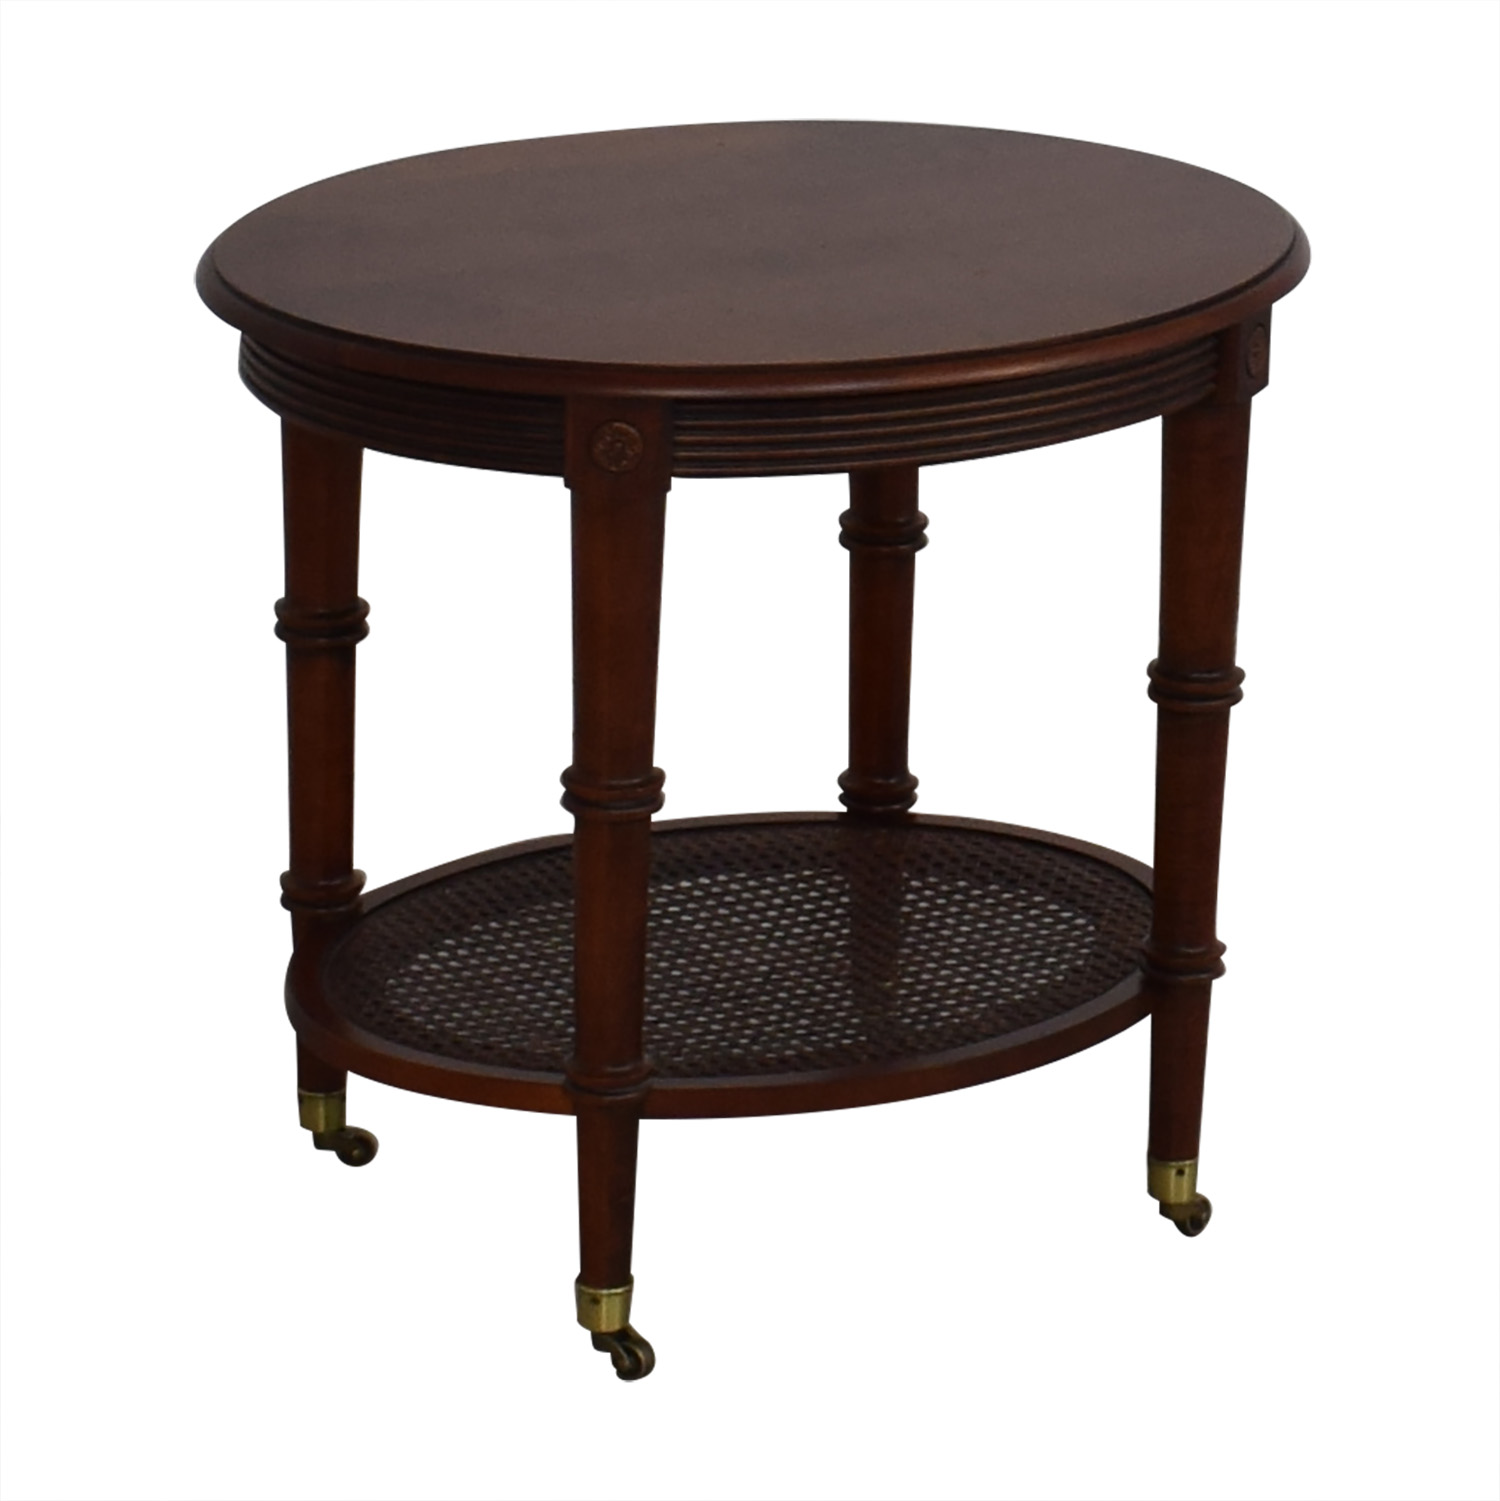 Ethan Allen Freeport End Table / End Tables